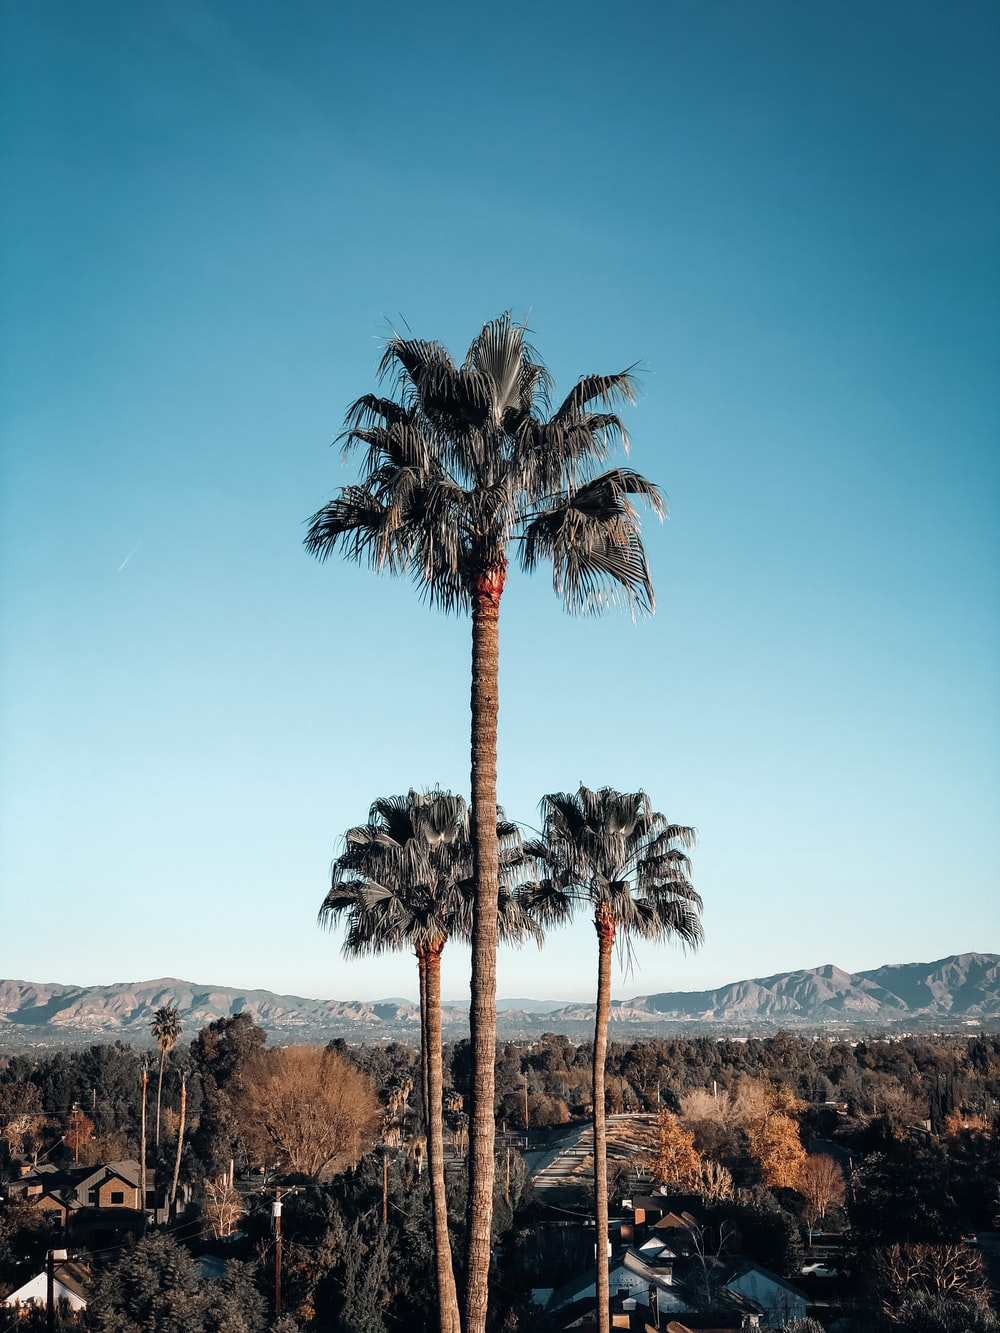 shallow focus photo of palm trees during daytime